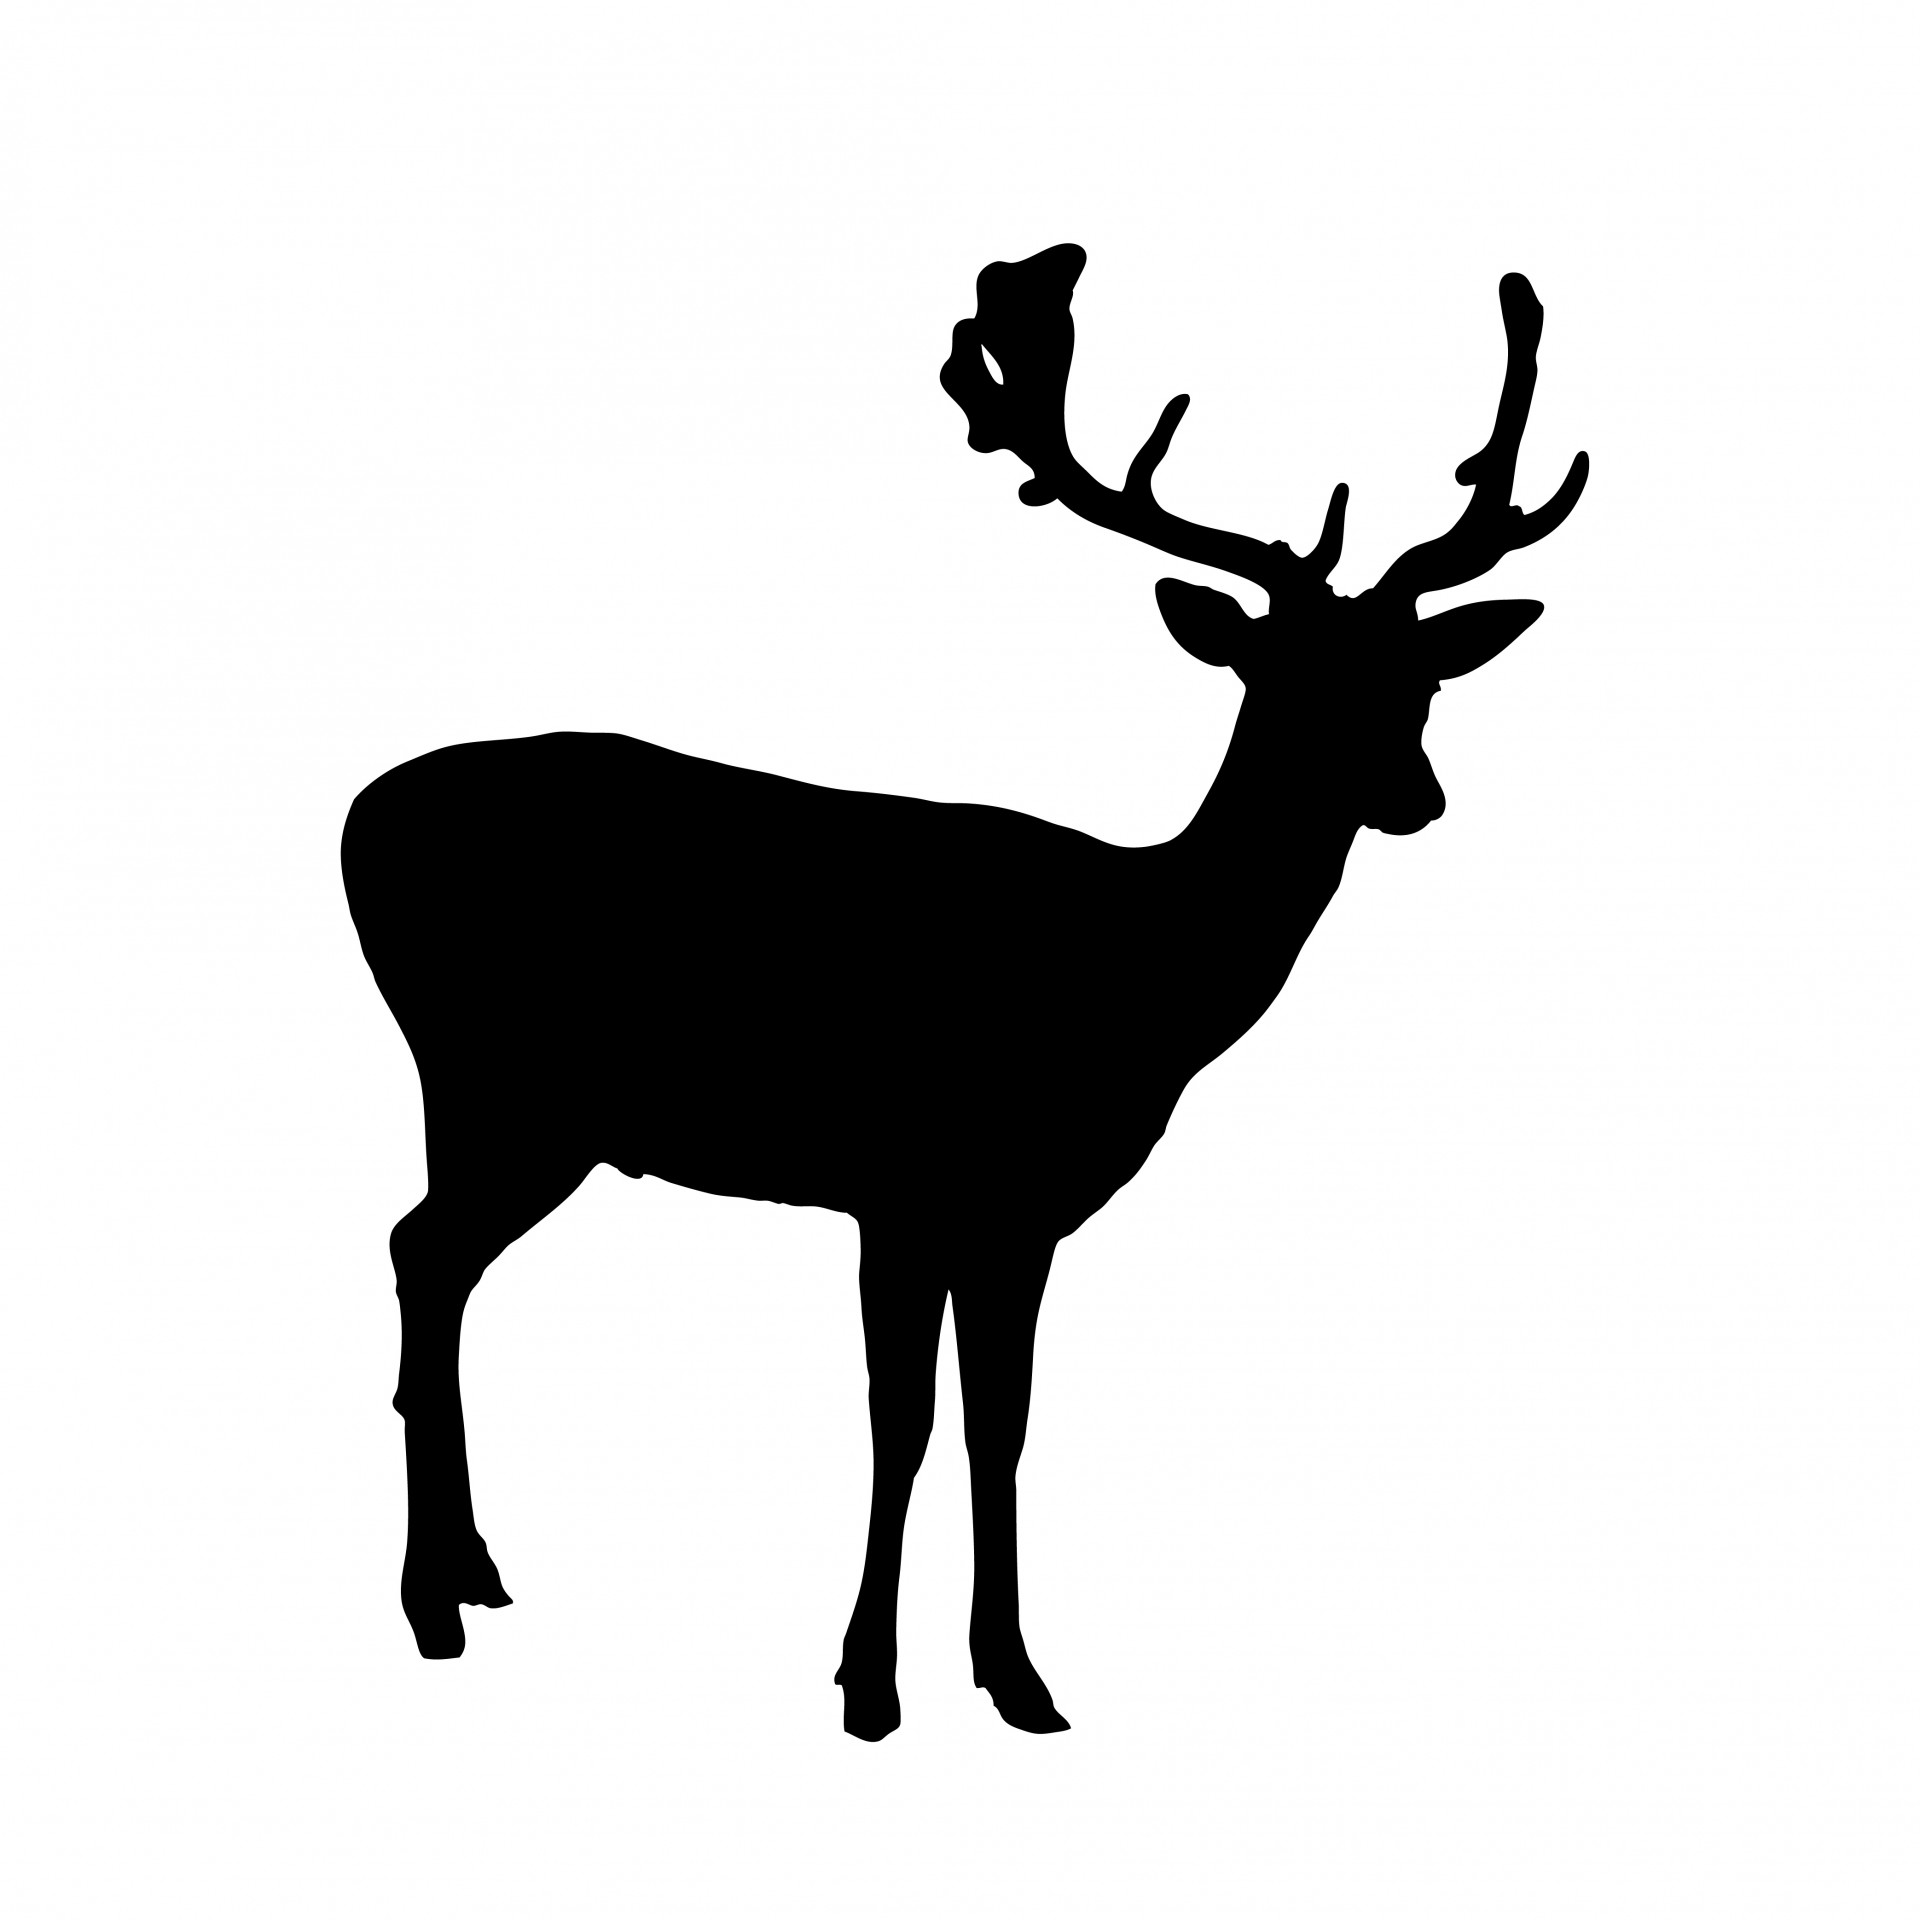 1920x1920 Free Deer Silhouette Download Clip Art On With Clipart